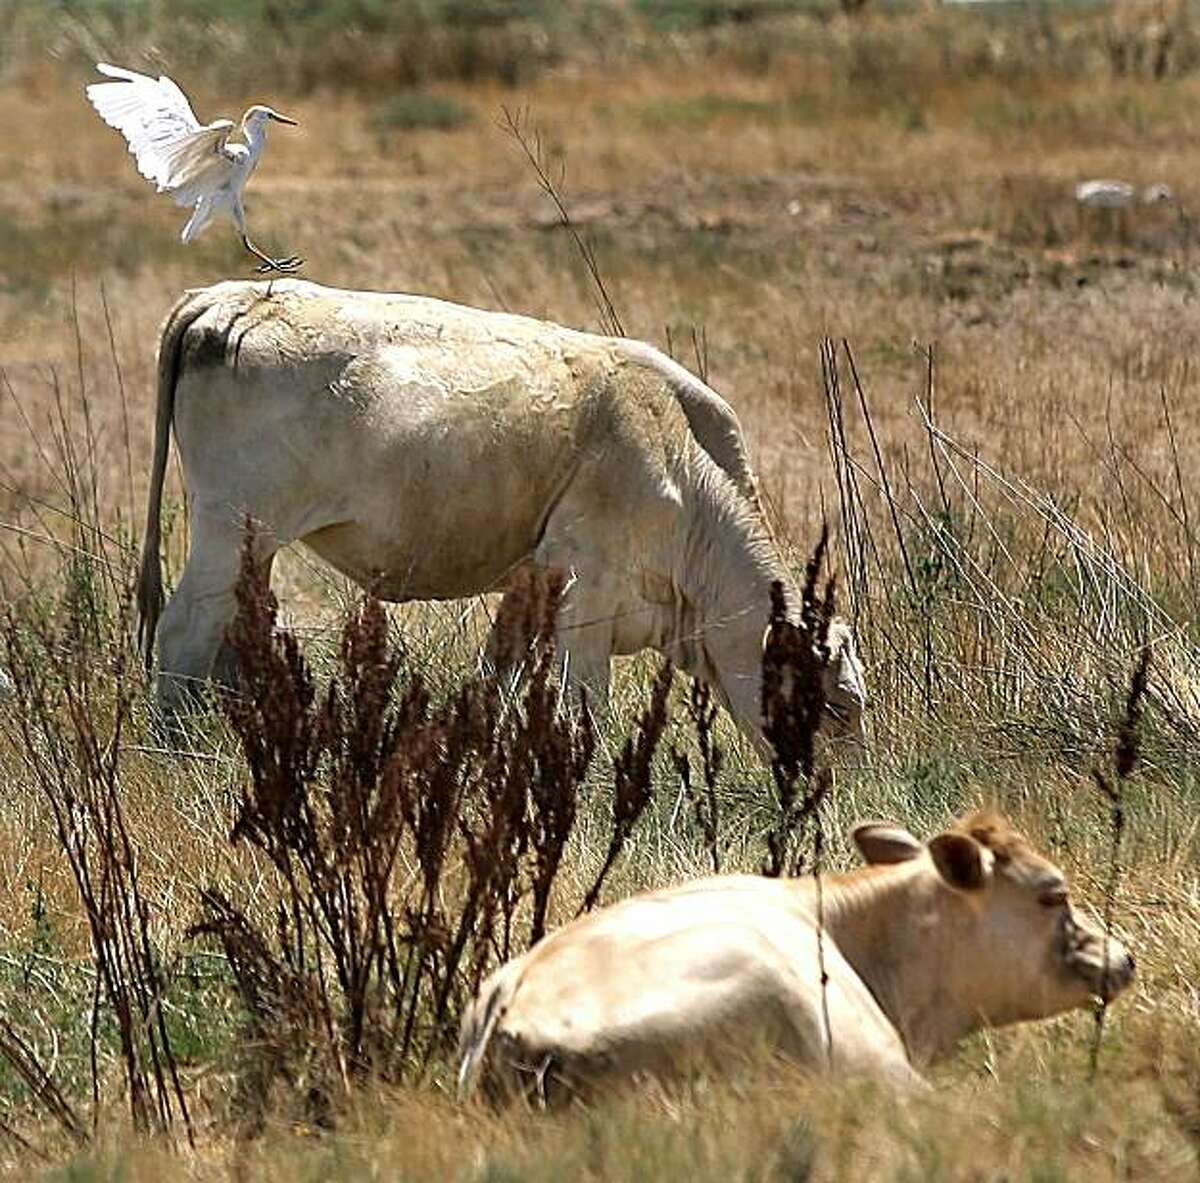 An egret comes in for a landing on the back of a cow in a field off of Buena Vista Road, Wednesday, July 12, 2006, southeast of Bakersfield, Calif.